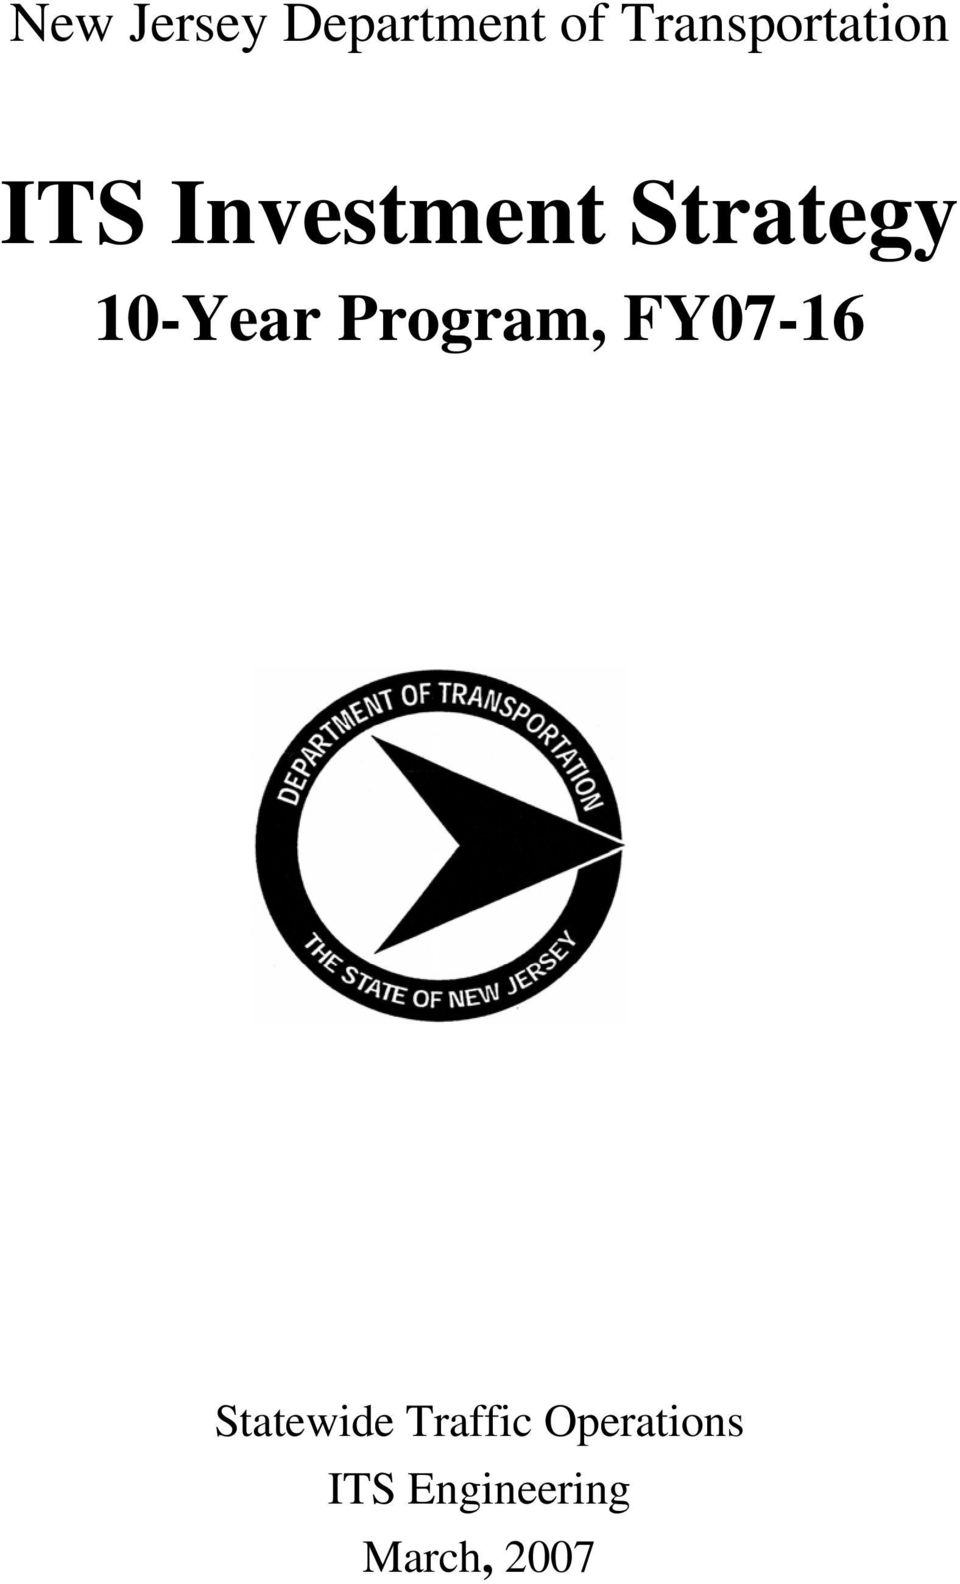 Strategy 10-Year Program, FY07-16